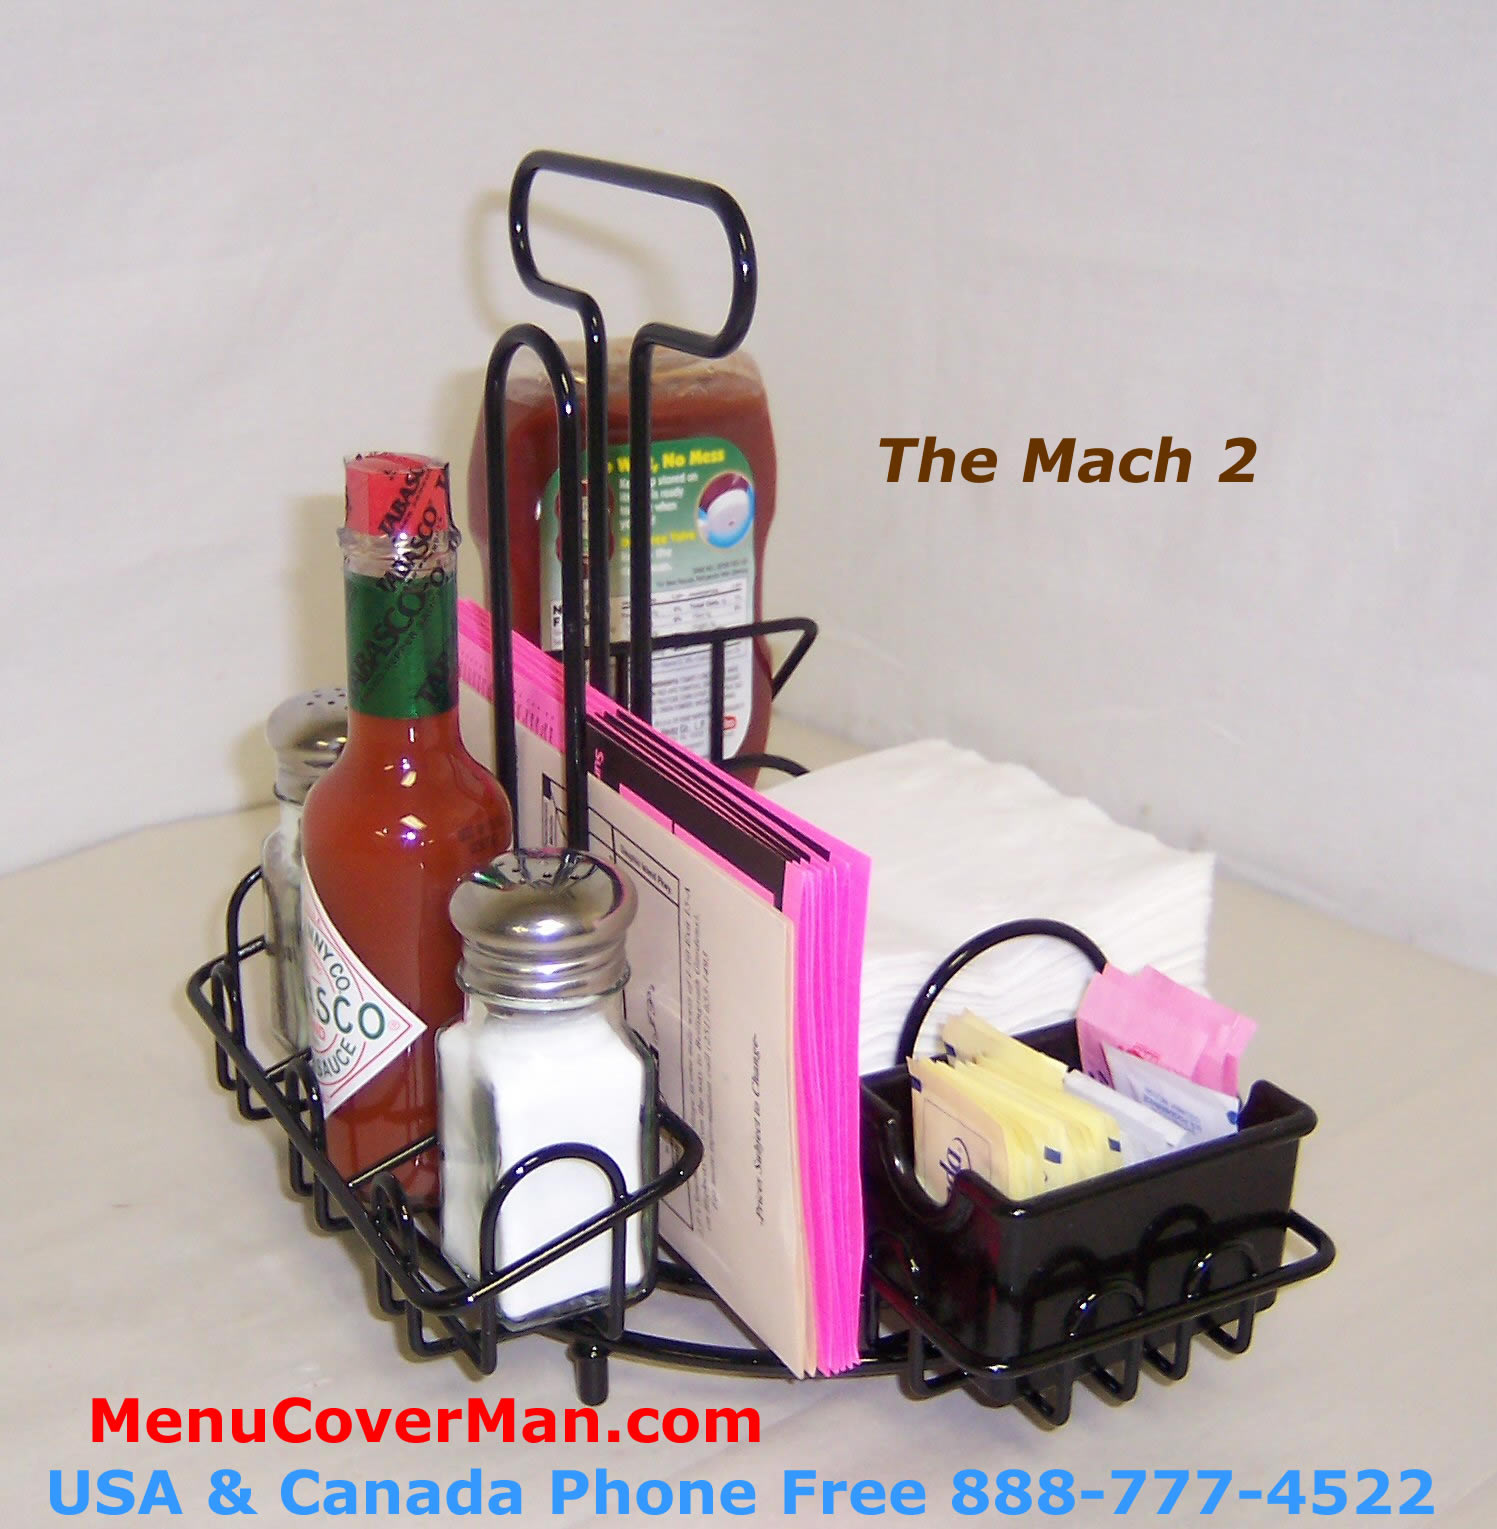 Condiment and napkins caddy holder for restaurants.